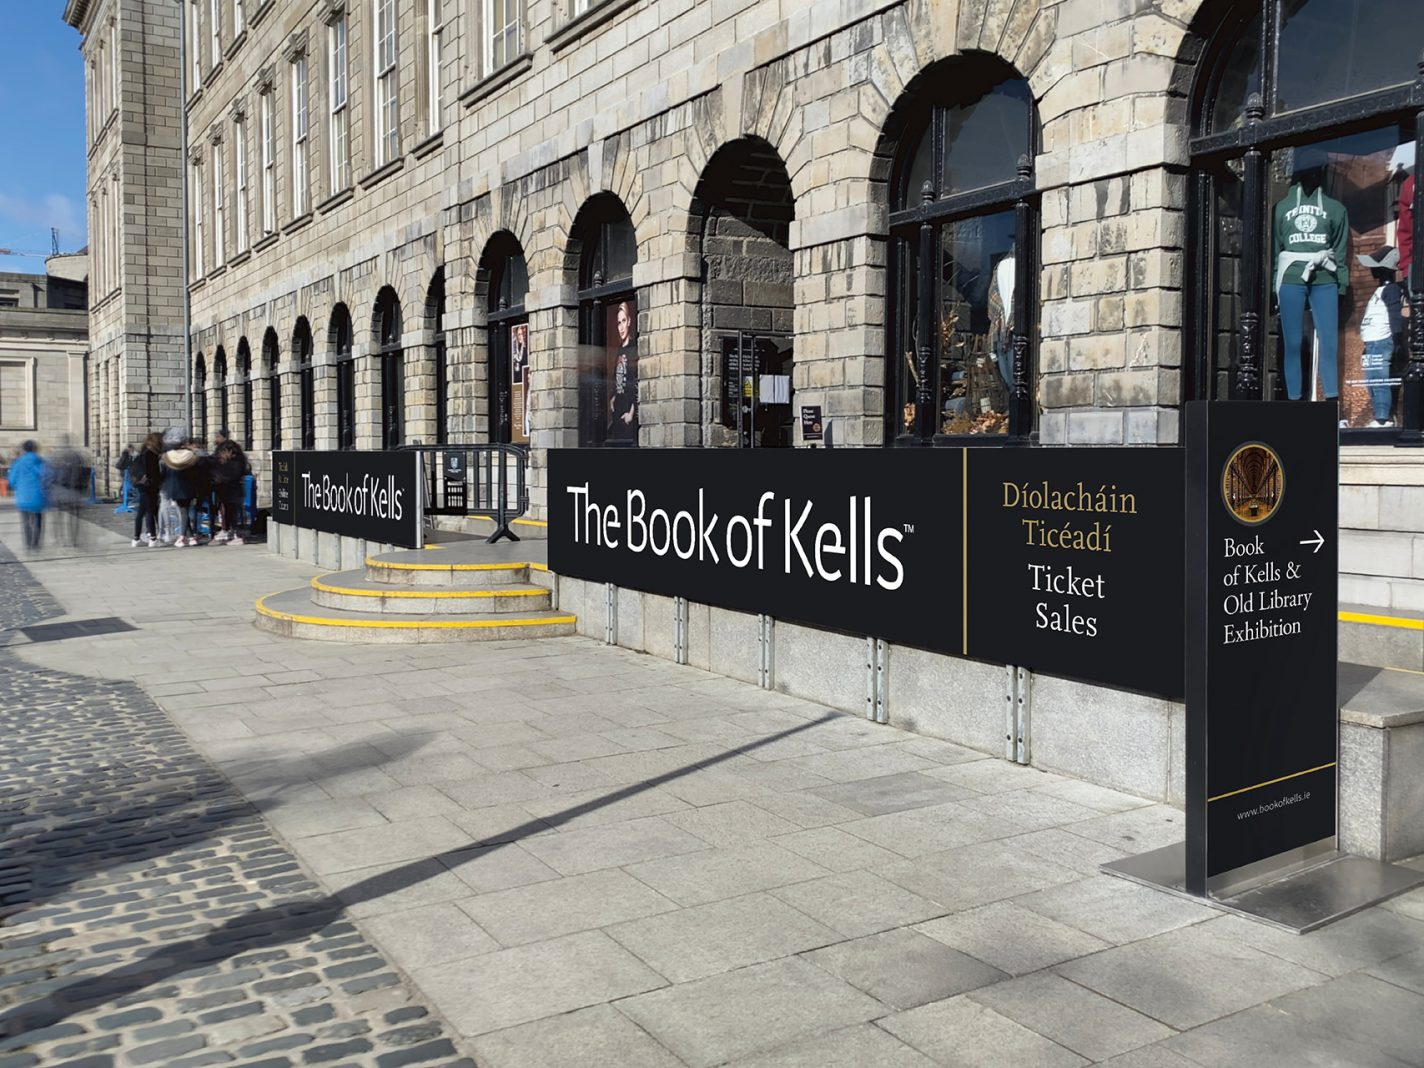 Trinity Book of Kells Exterior Outside